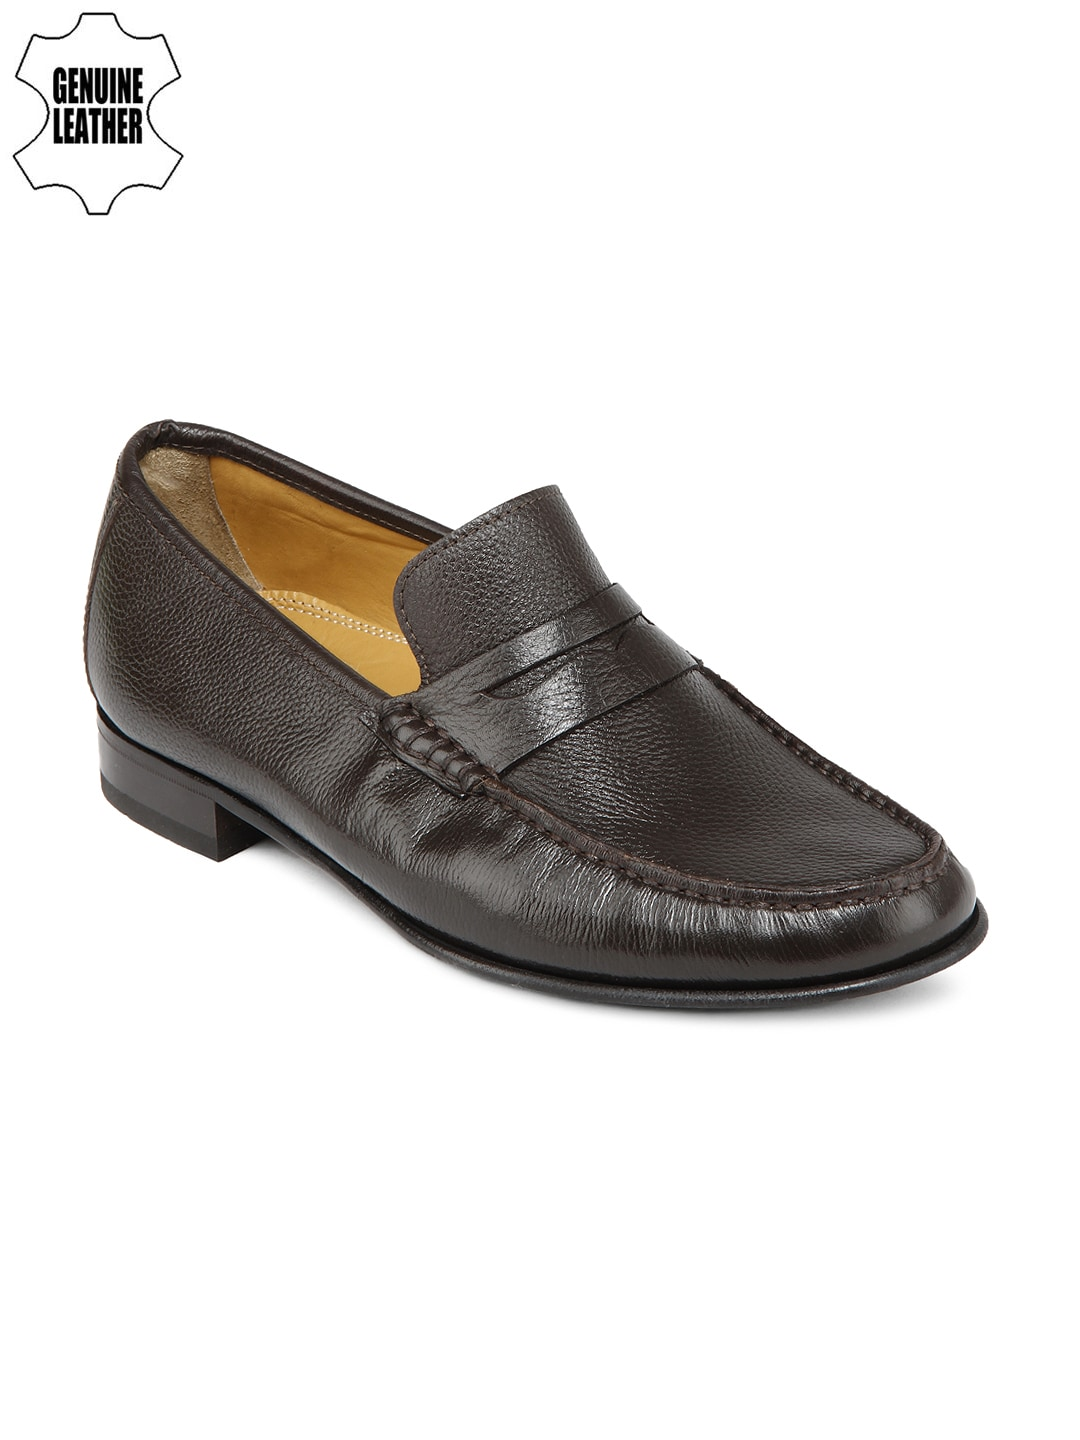 a476f7d01 Men Classic Formal Shoes - Buy Men Classic Formal Shoes online in India